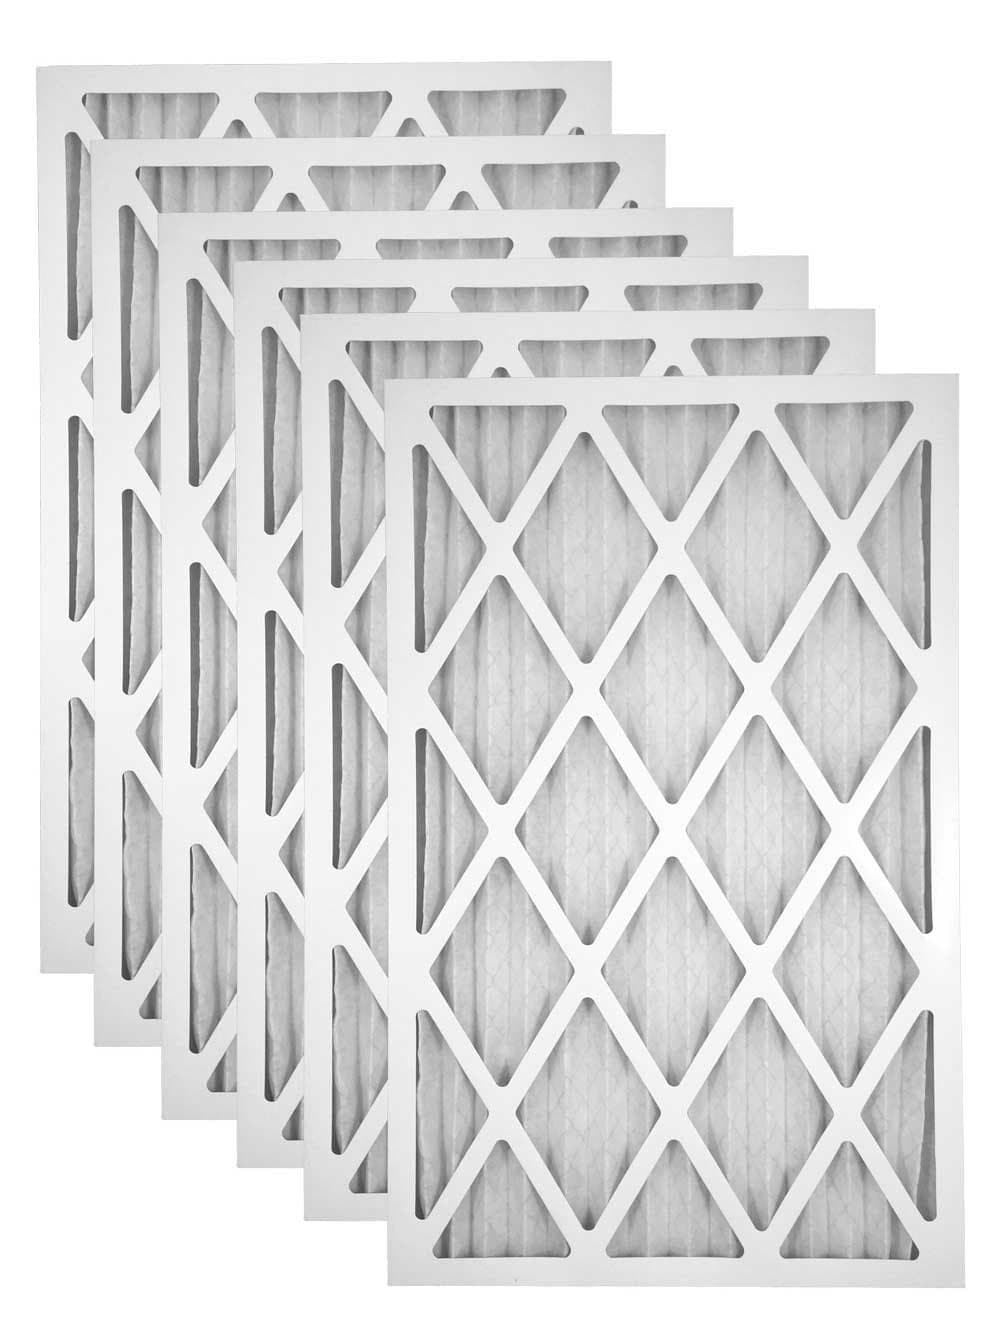 14x25x1 Merv 13 AC Furnace Filter - Case of 6